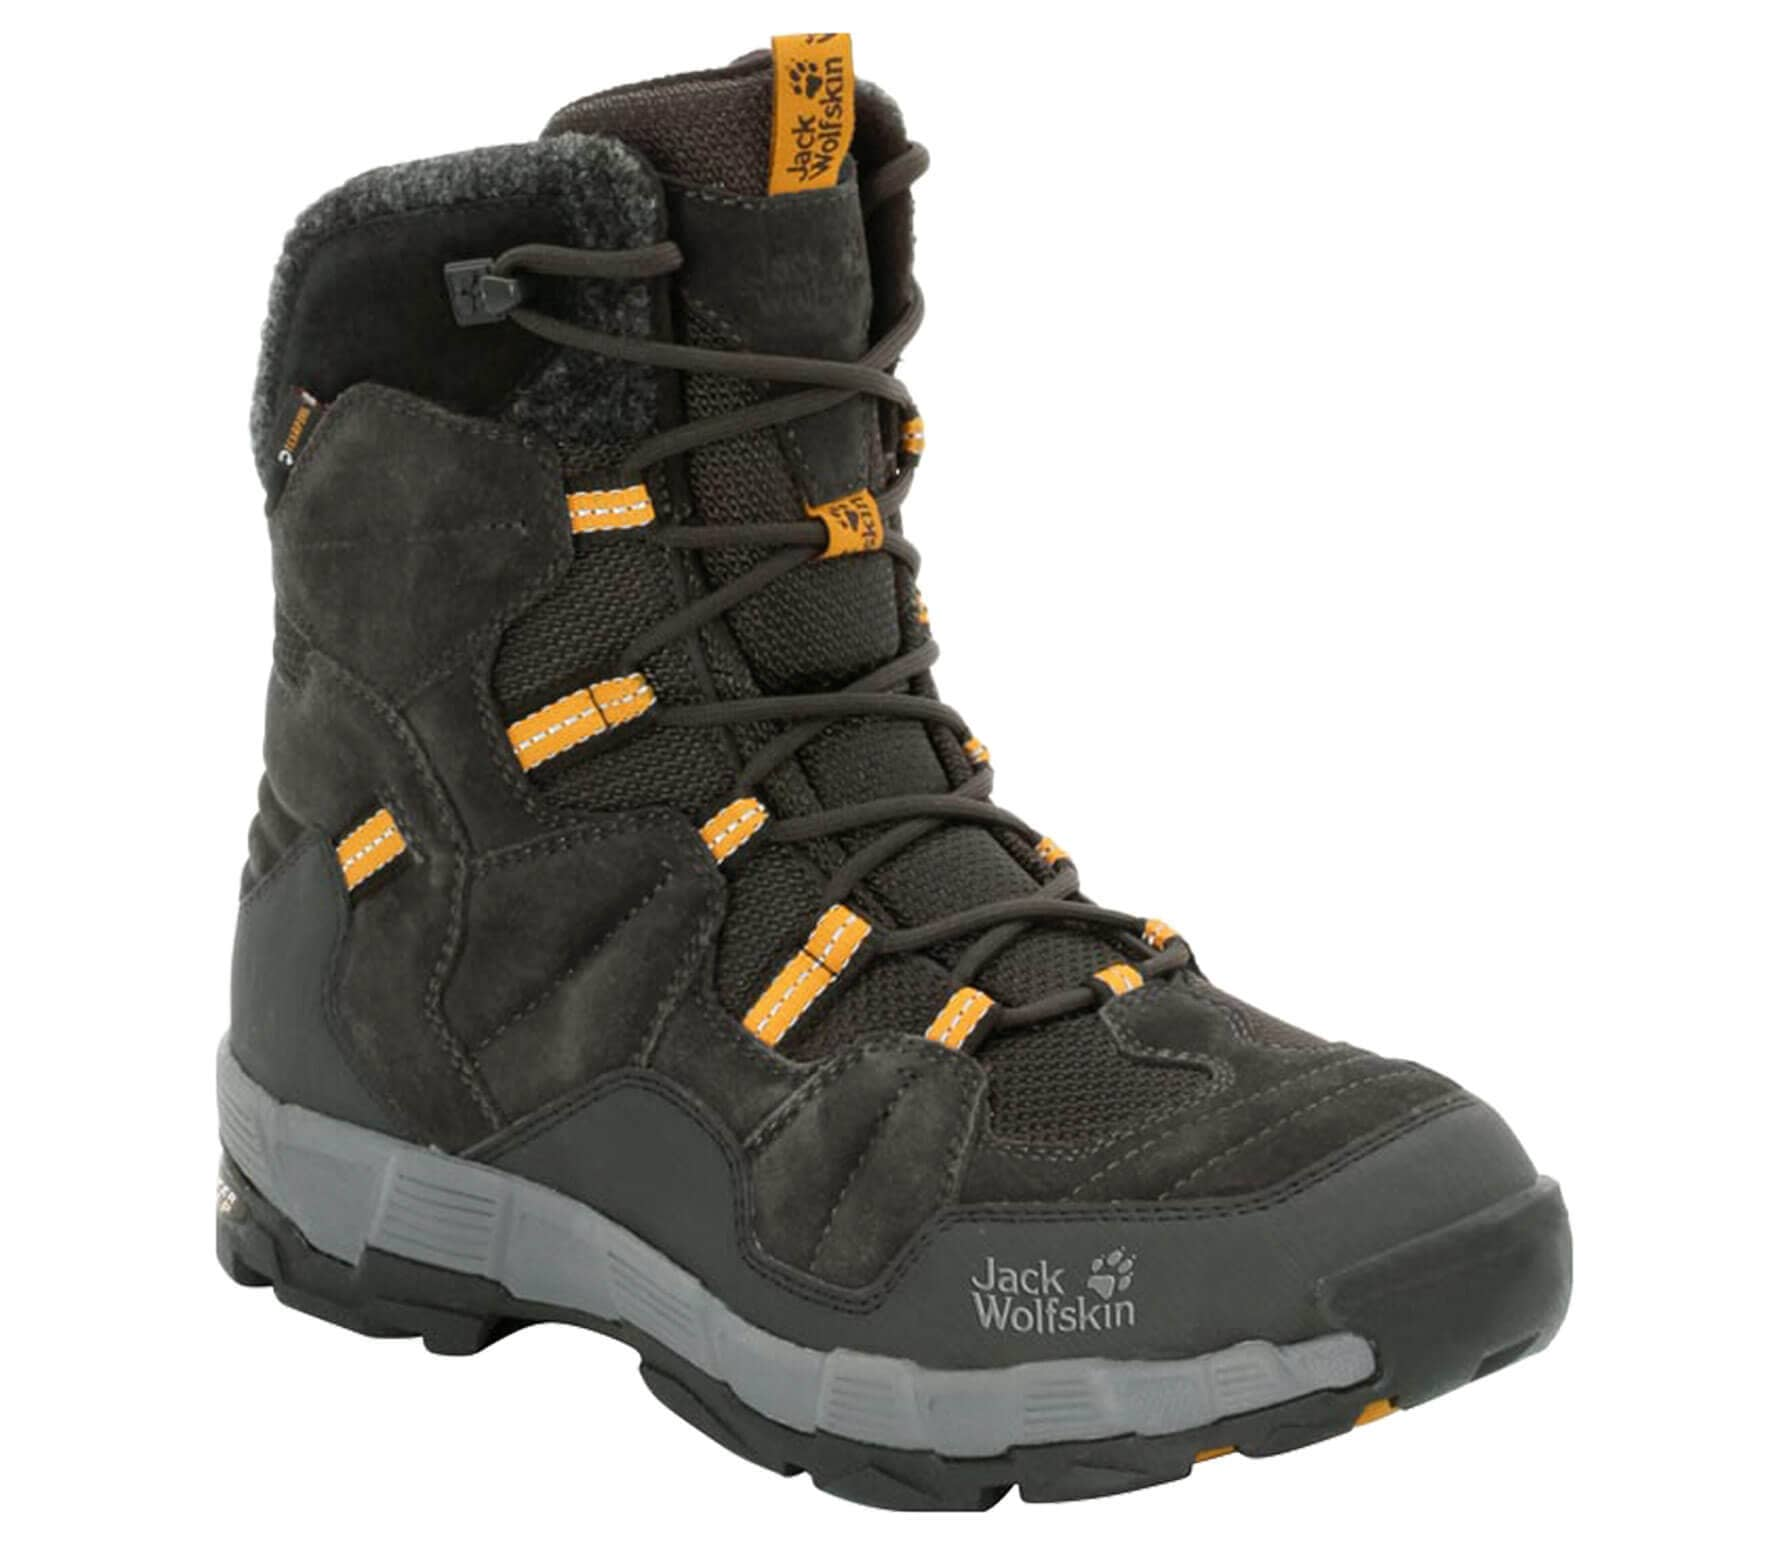 pretty nice 2eb89 d5f11 Jack wolfskin Yukon Valley Texapore Hommes Winterschuhe Men